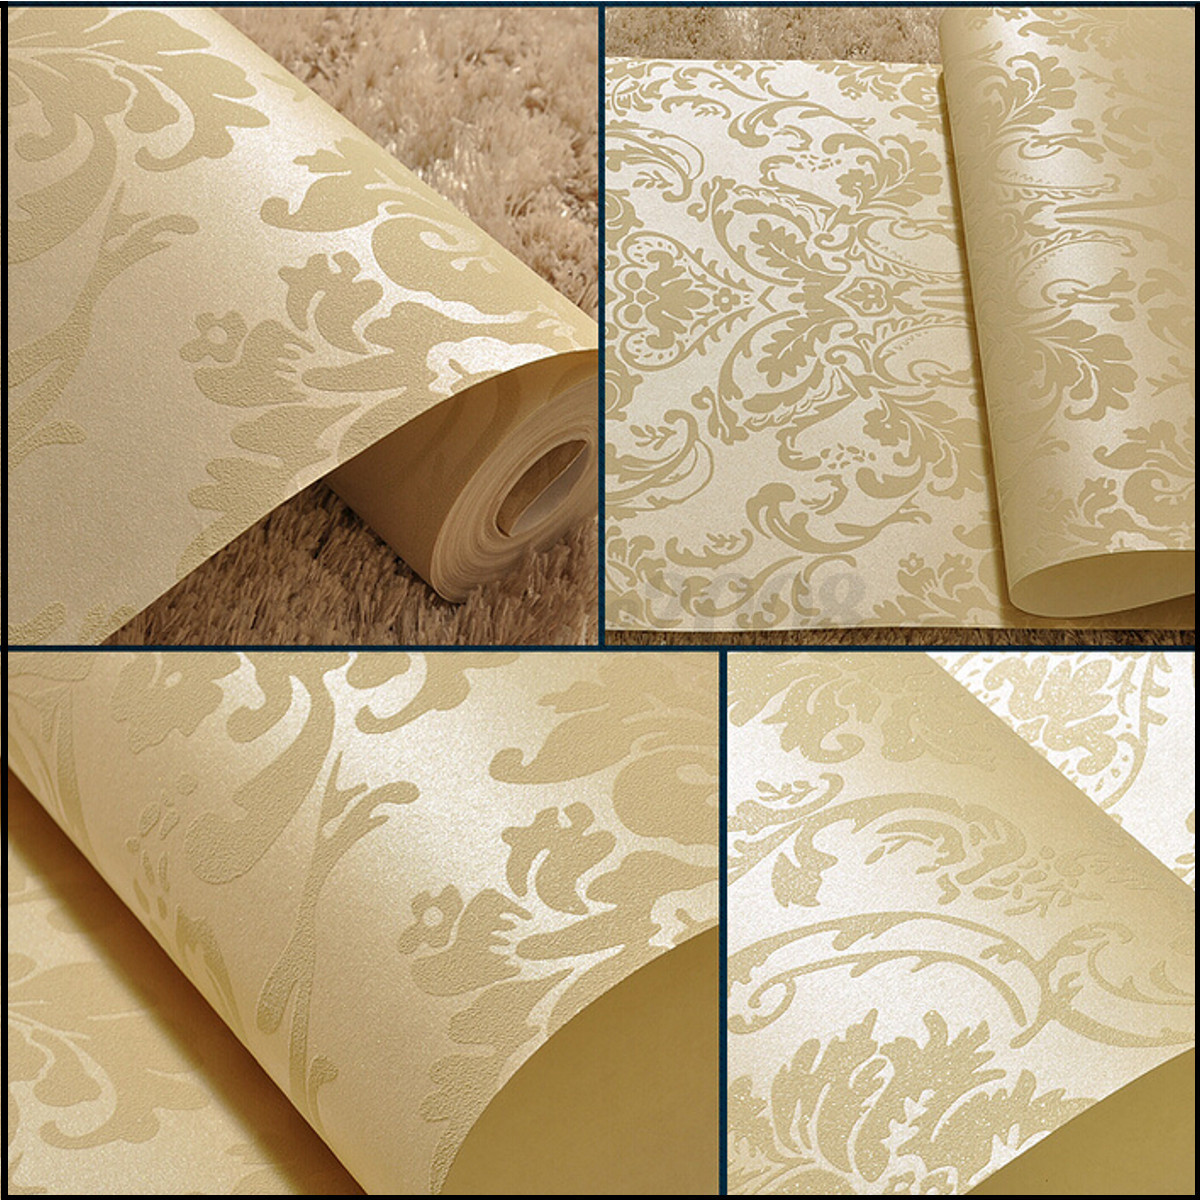 10M Embossed Damask Design Textured Flocked Non-woven